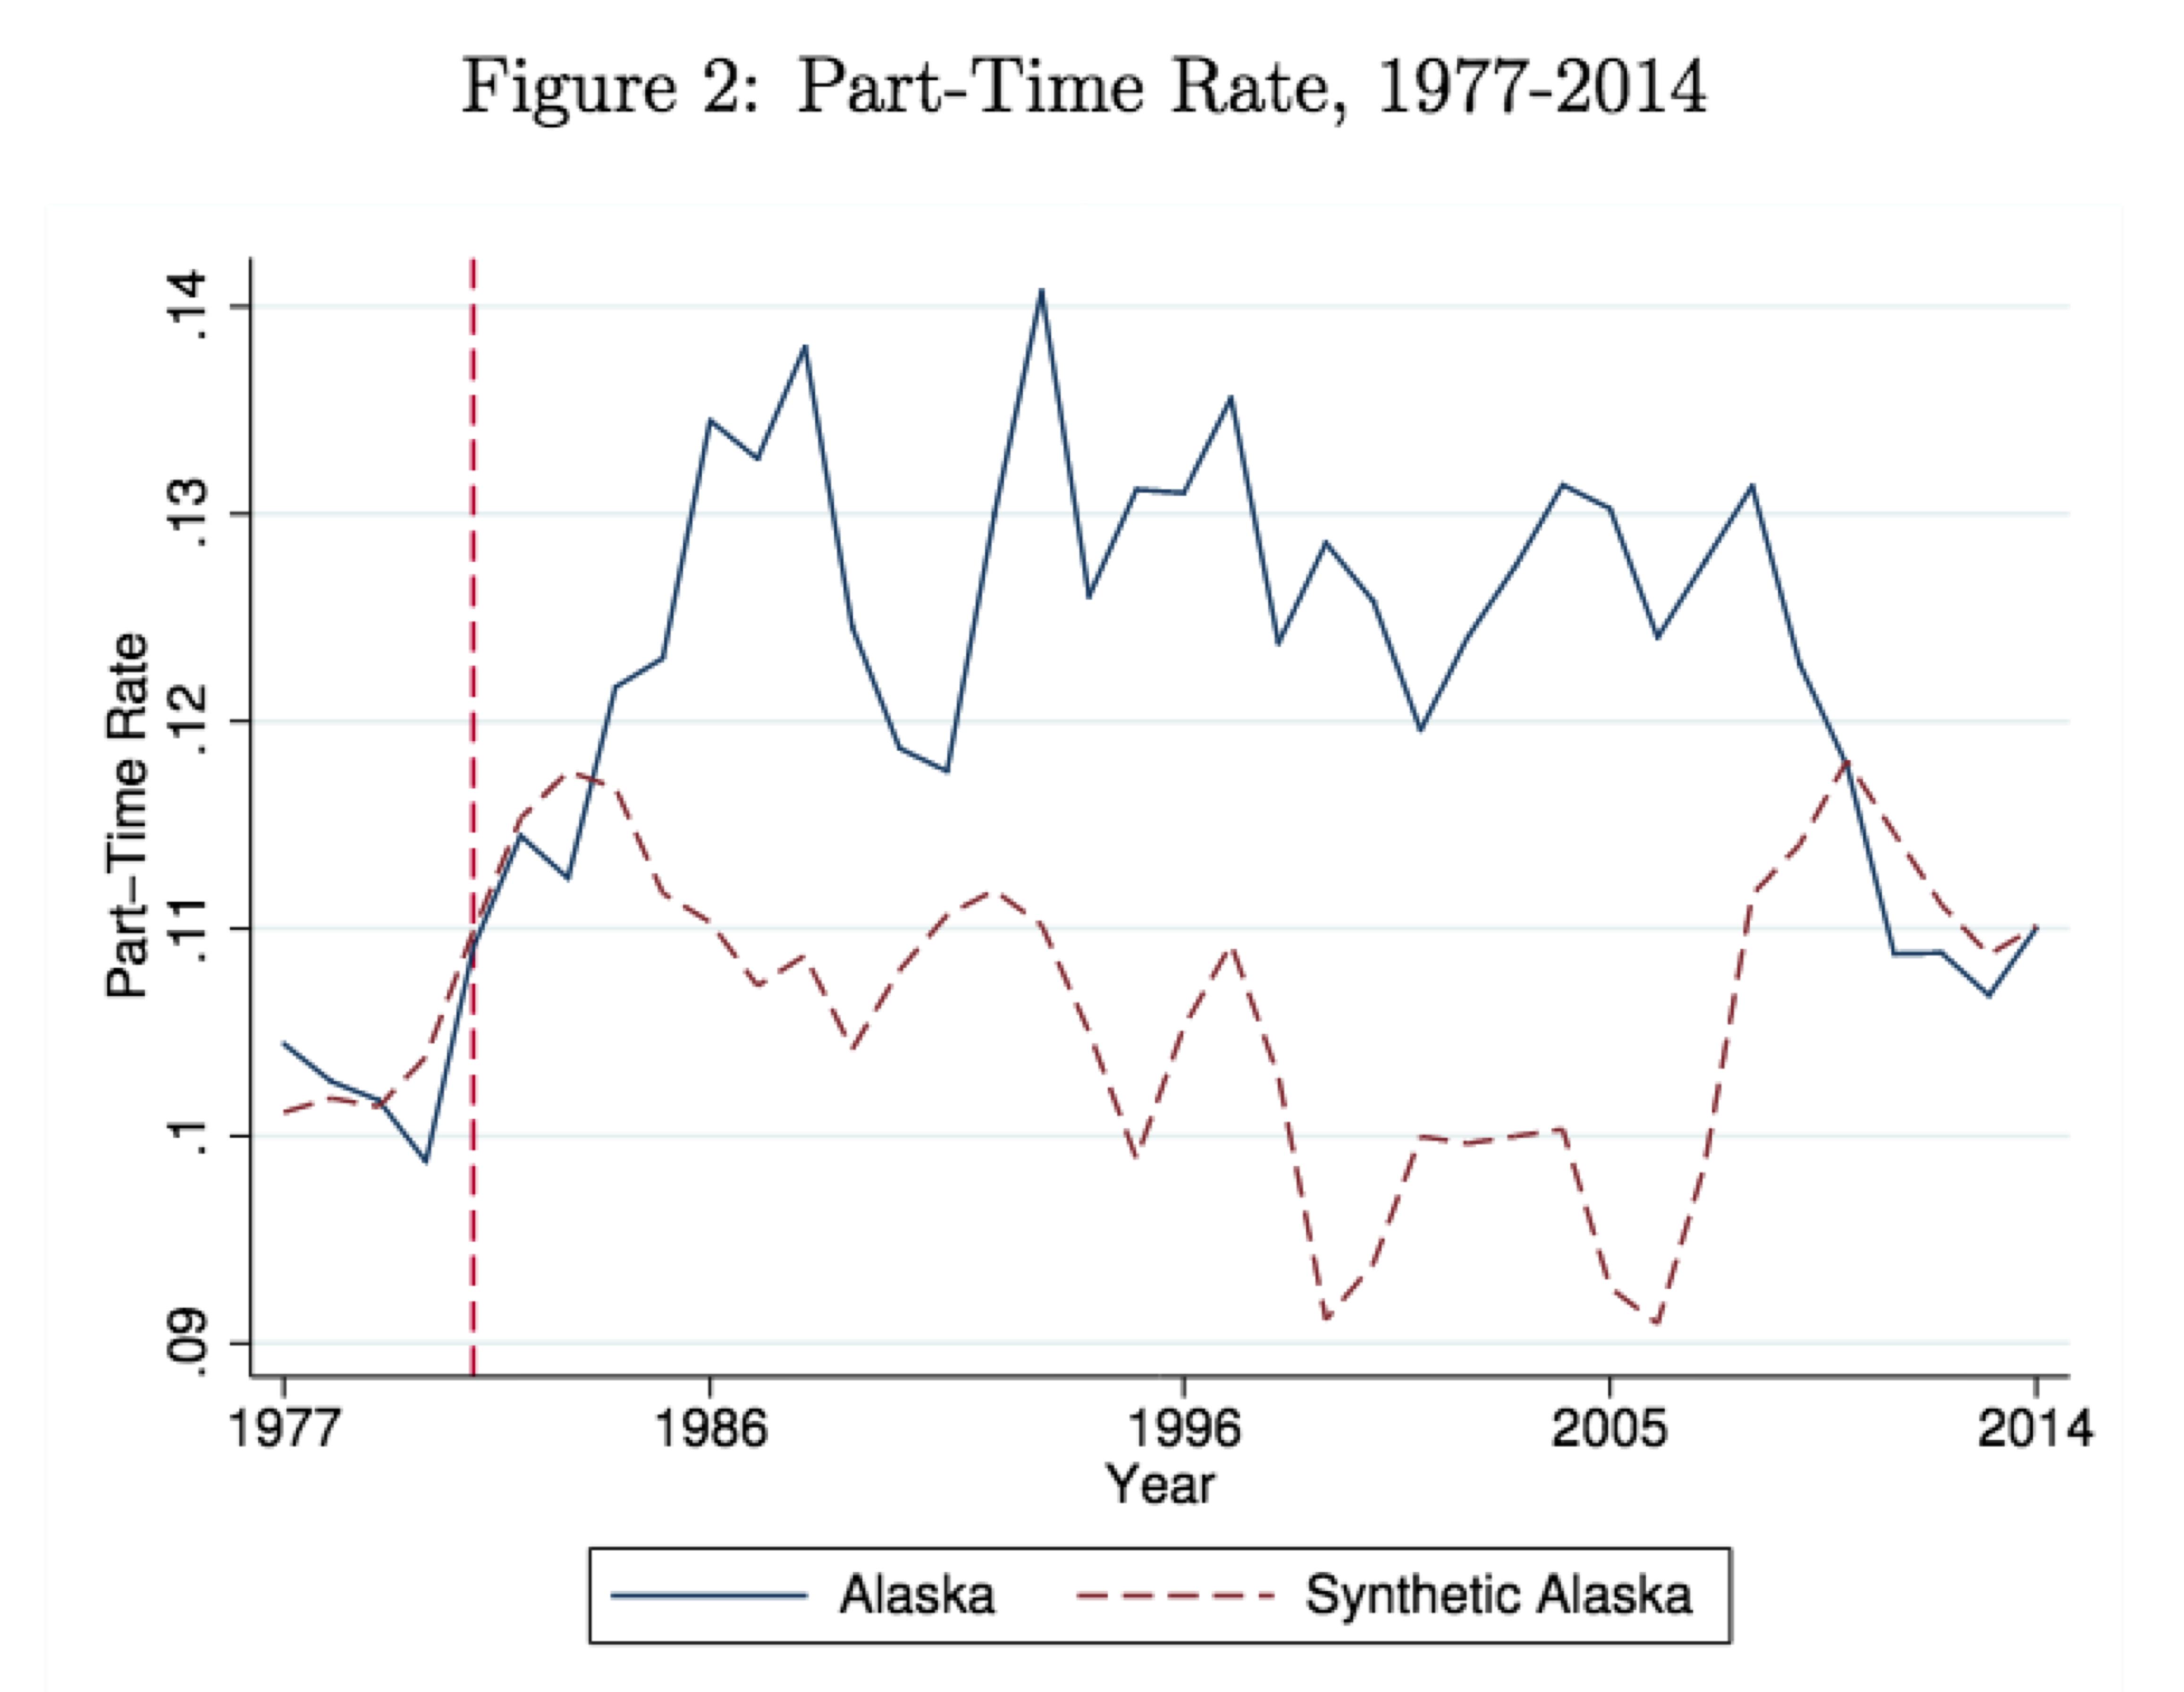 Effects of Alaska Permanent Fund on part-time work